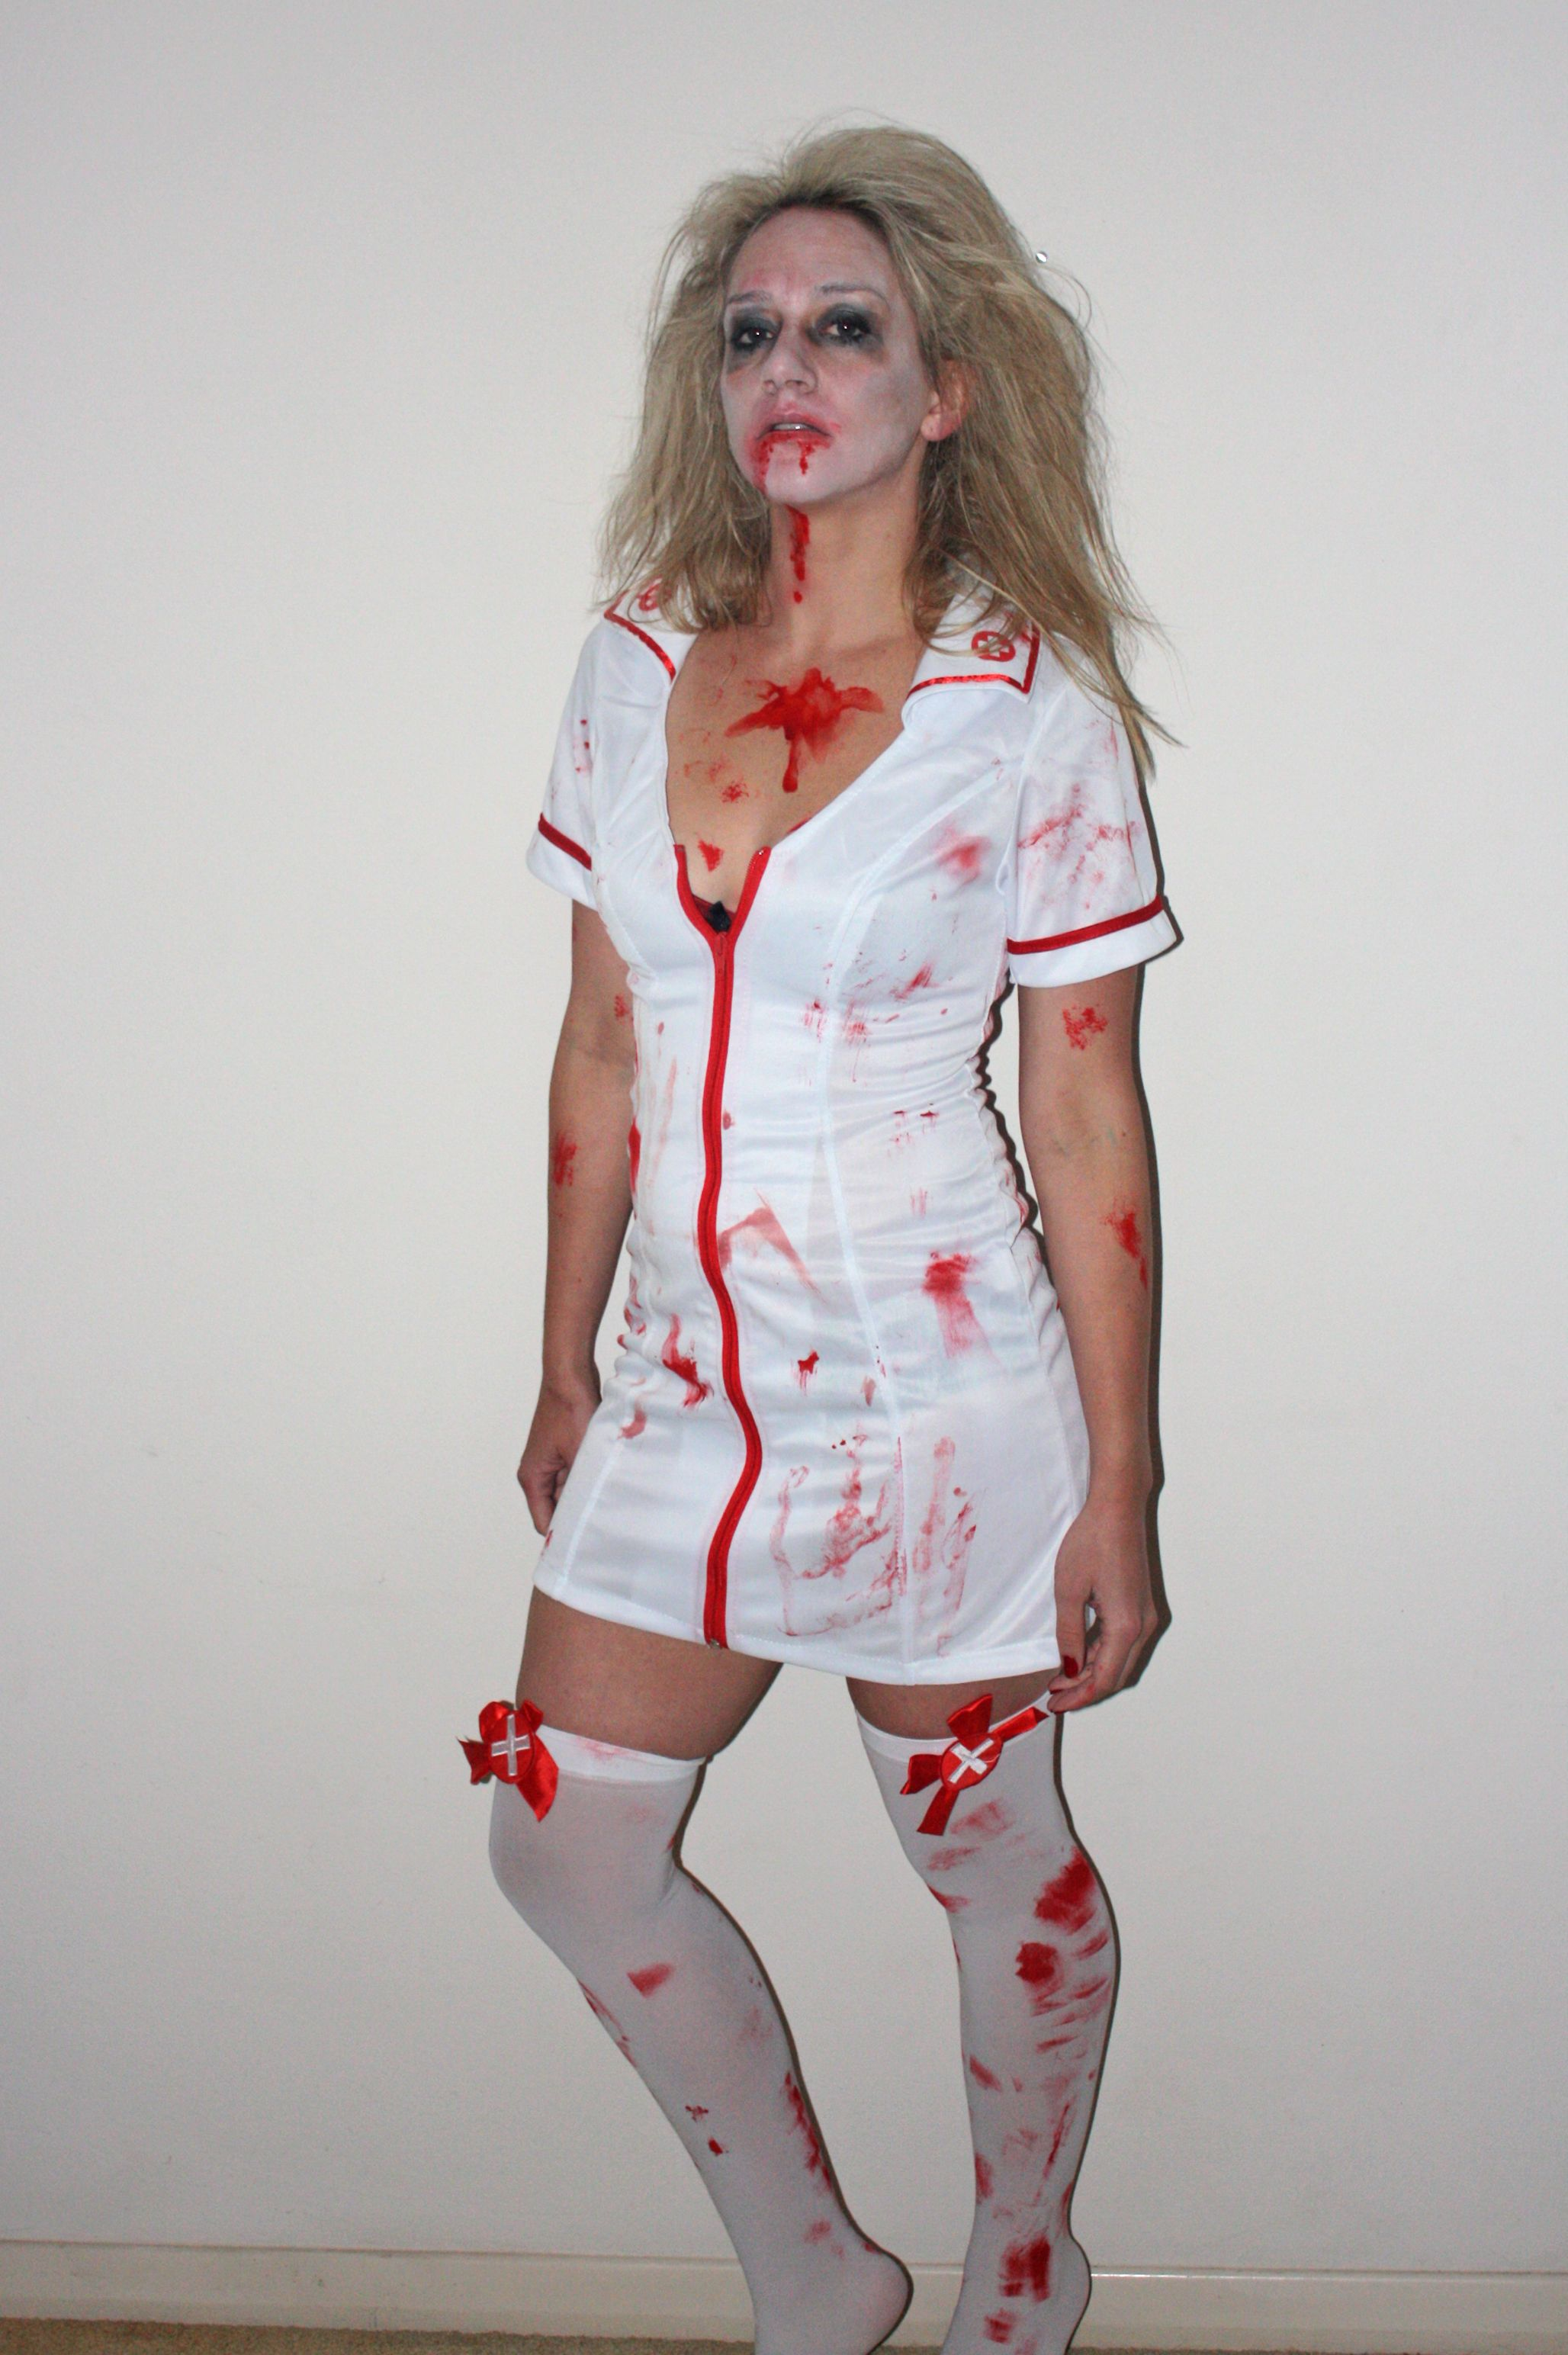 Halloween costume - zombie nurse | Halloween costumes | Pinterest ...